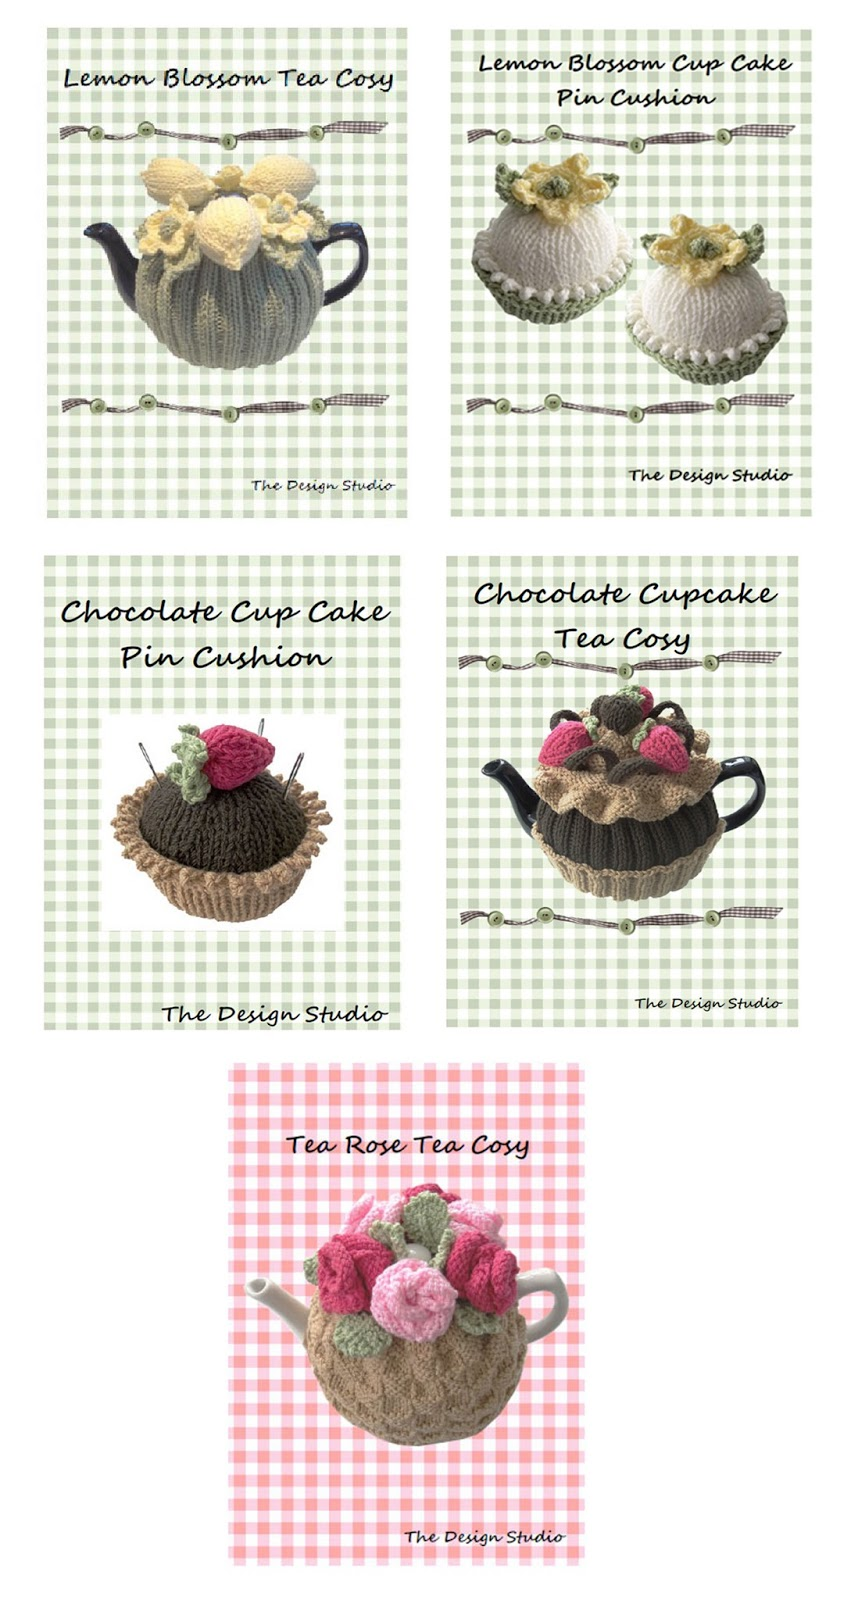 Tea Cosy and Cupcake Knitting Patterns